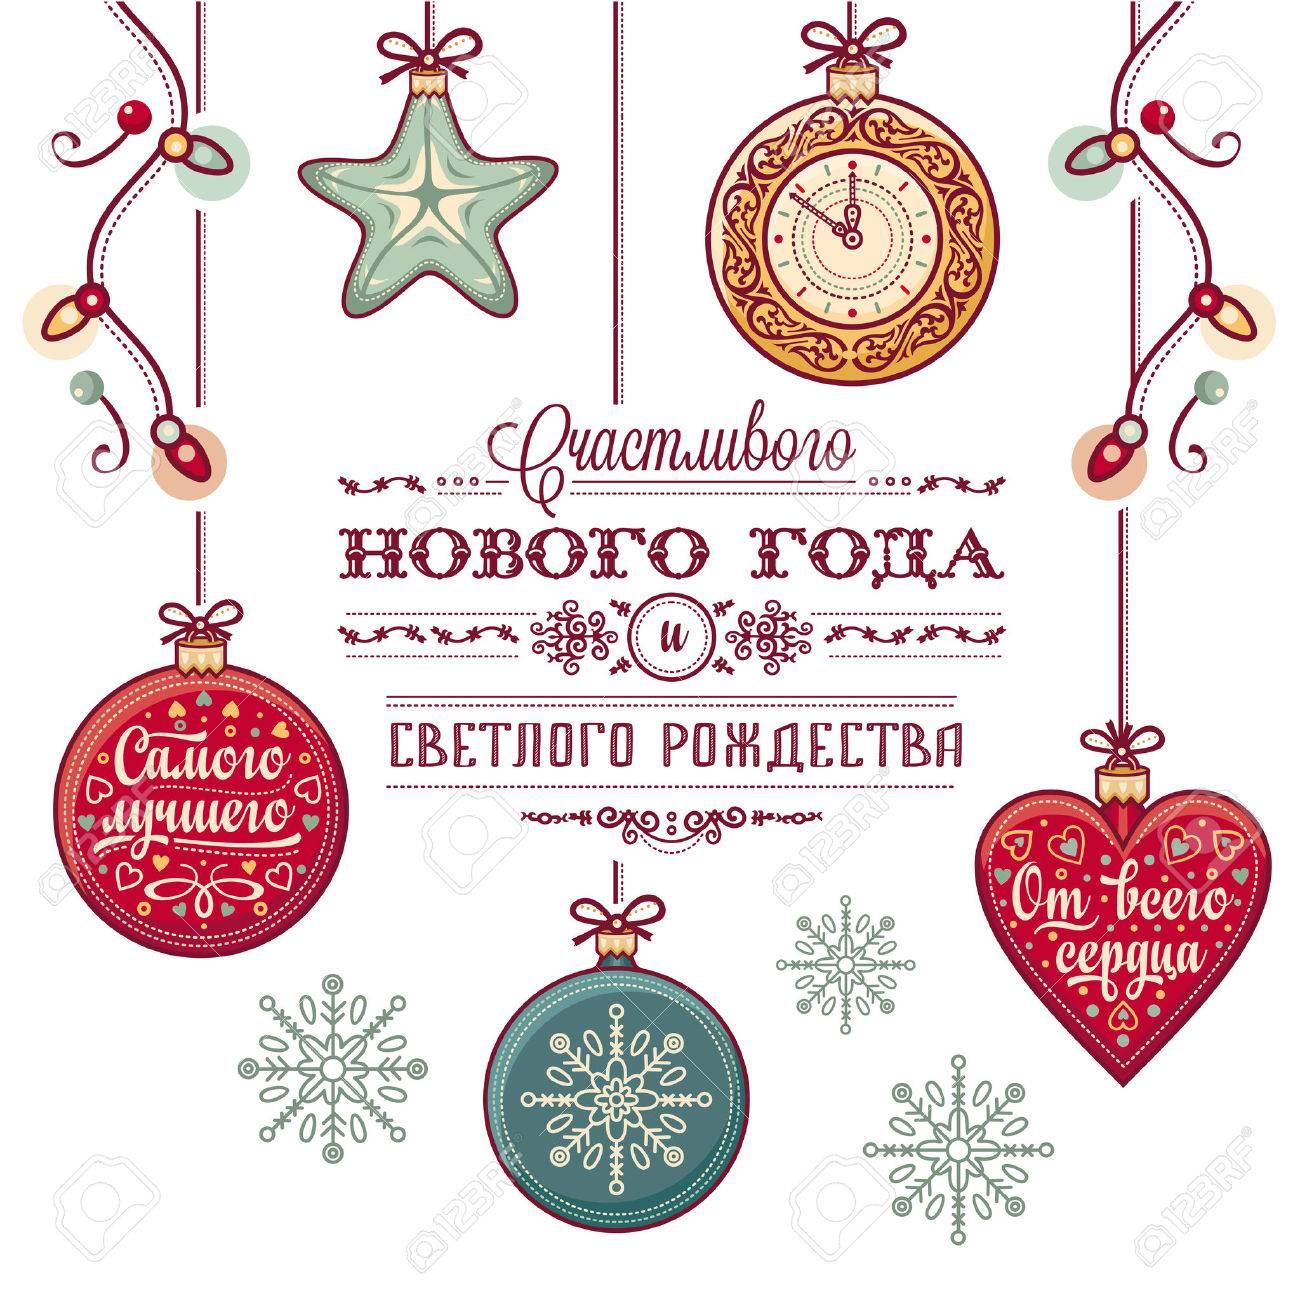 Peculiar 49815844 Greeting Card Cyrillic Russian New Year Russian Font Happy New Year Message Happy Holidays Wish Whit Happy Holidays Message To Customers Happy Holidays Messages inspiration Happy Holidays Message